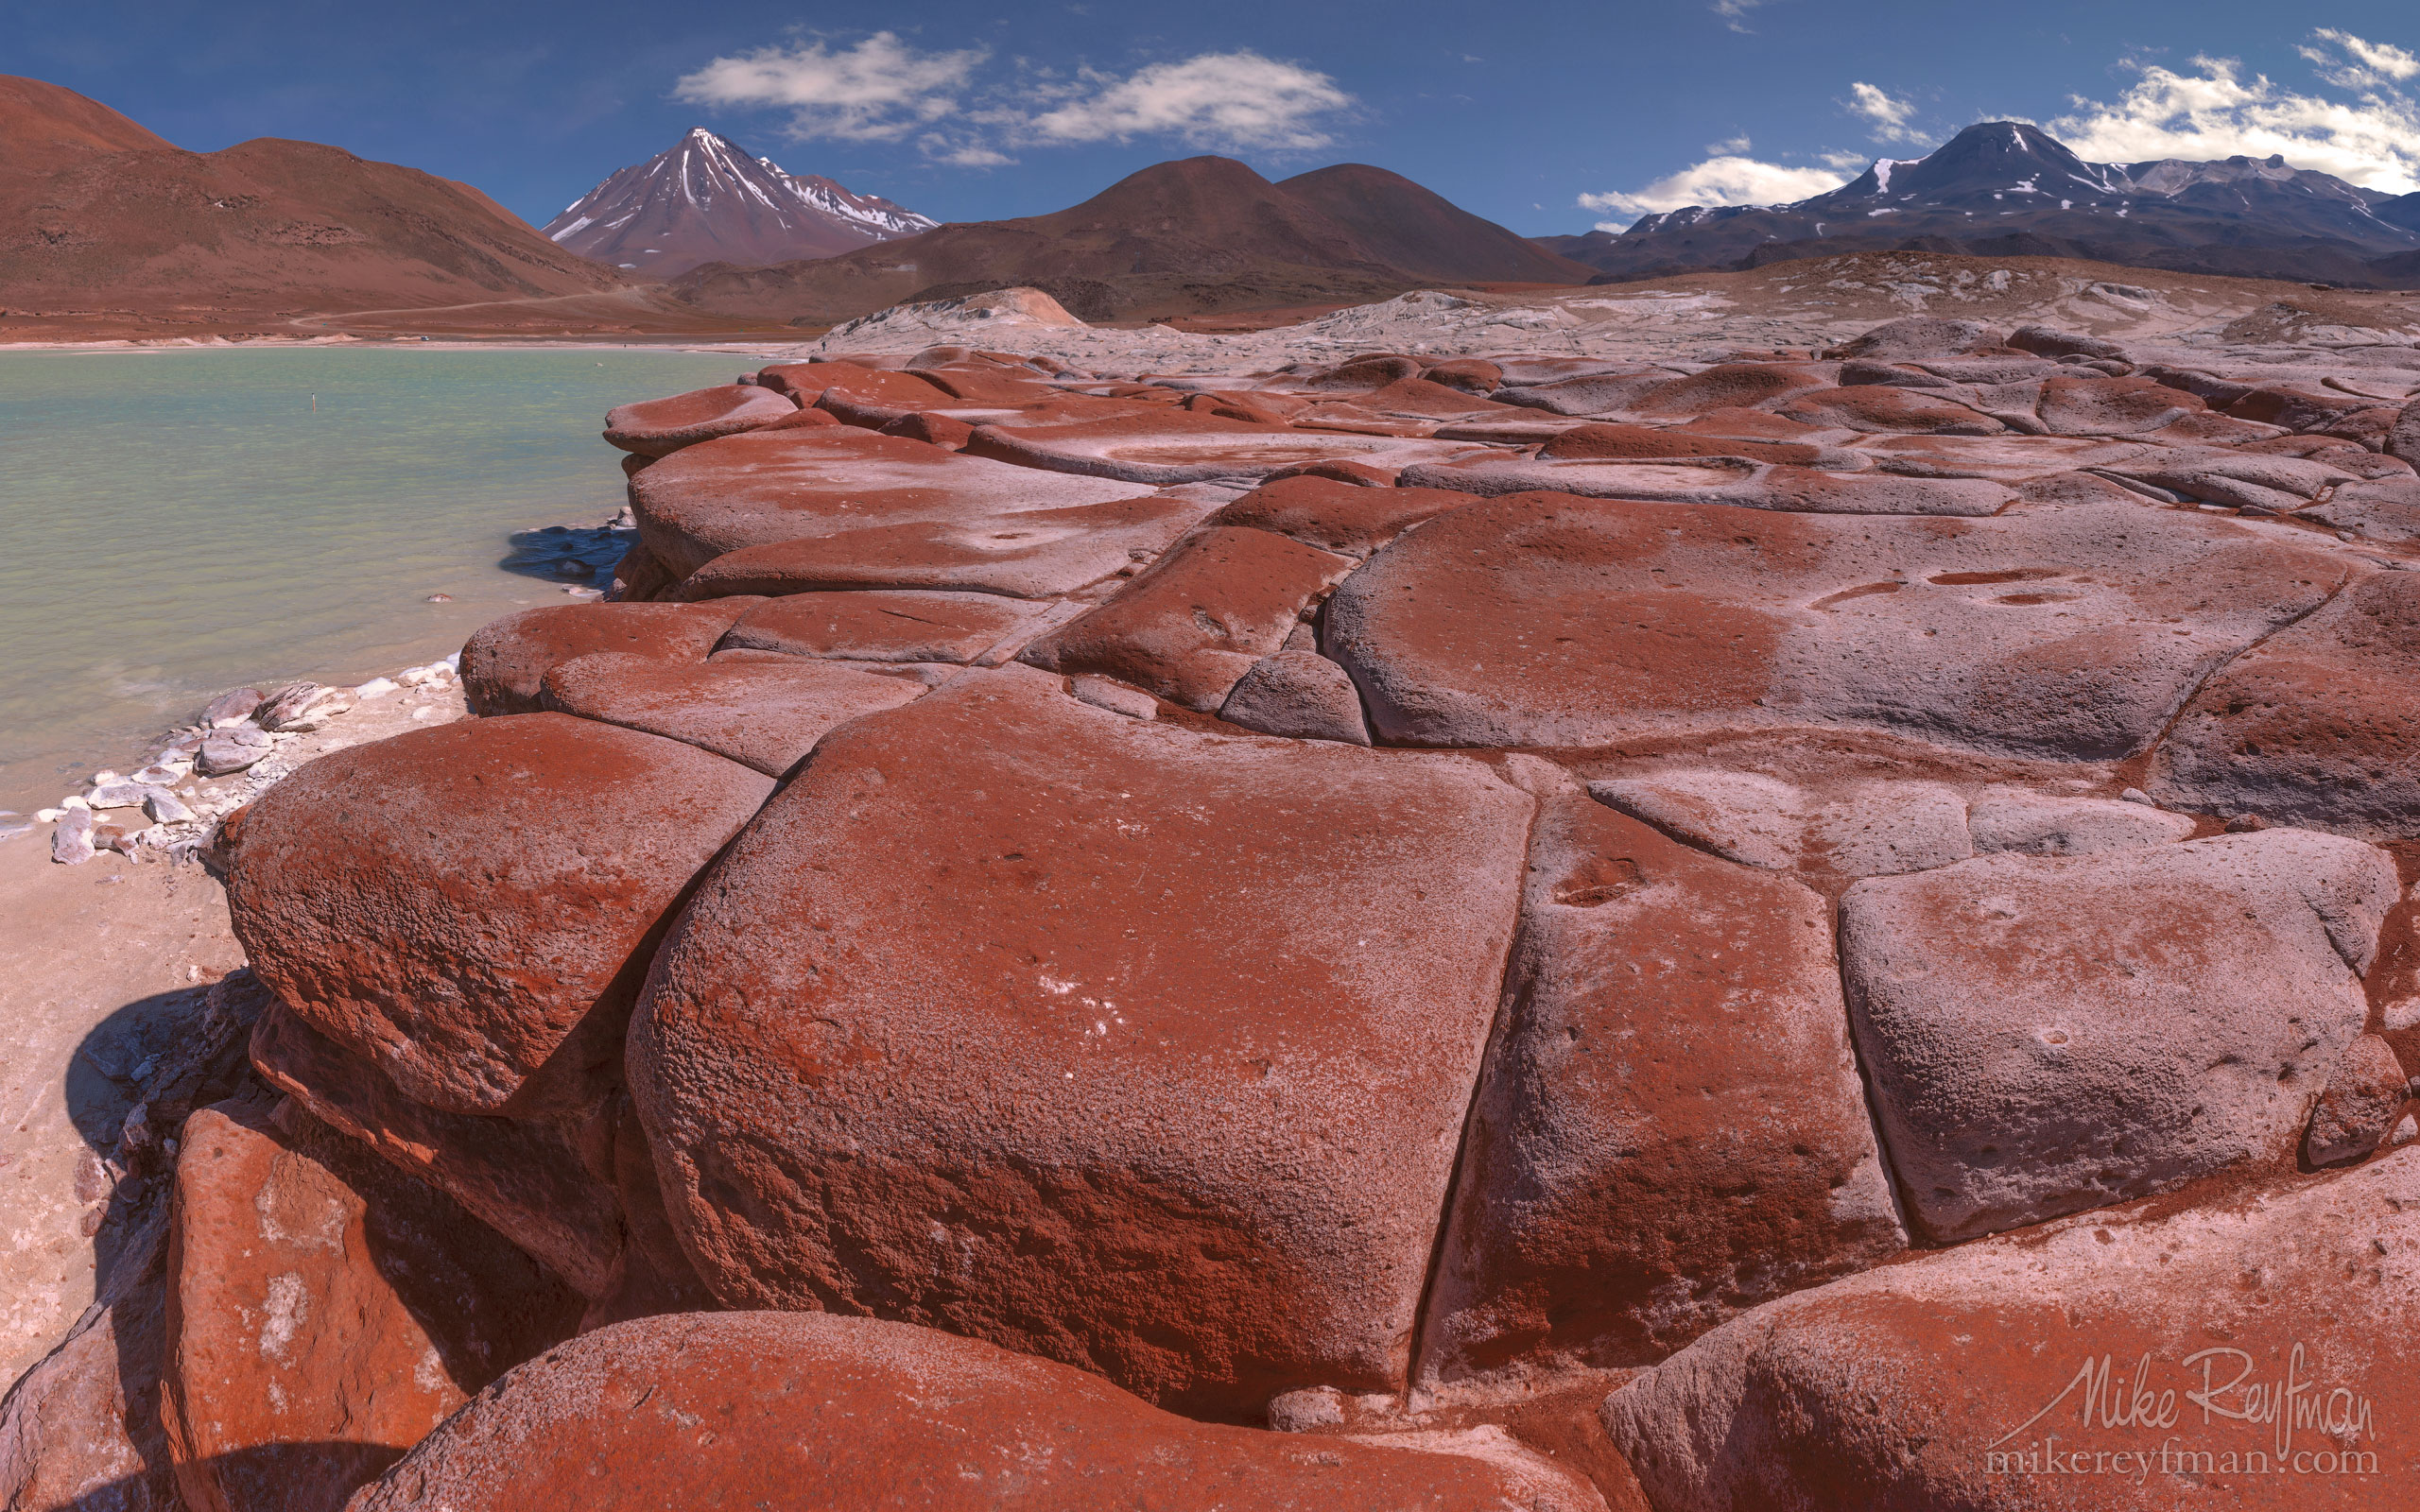 Piedras Rojas and Salar de Aguas Calientes. San Pedro de Atacama, Atacama Desert, Antofagasta Region, Chile AA1-Q3X0752 - Atacama and Altiplano. The Driest Desert and The High Plain - Mike Reyfman Photography